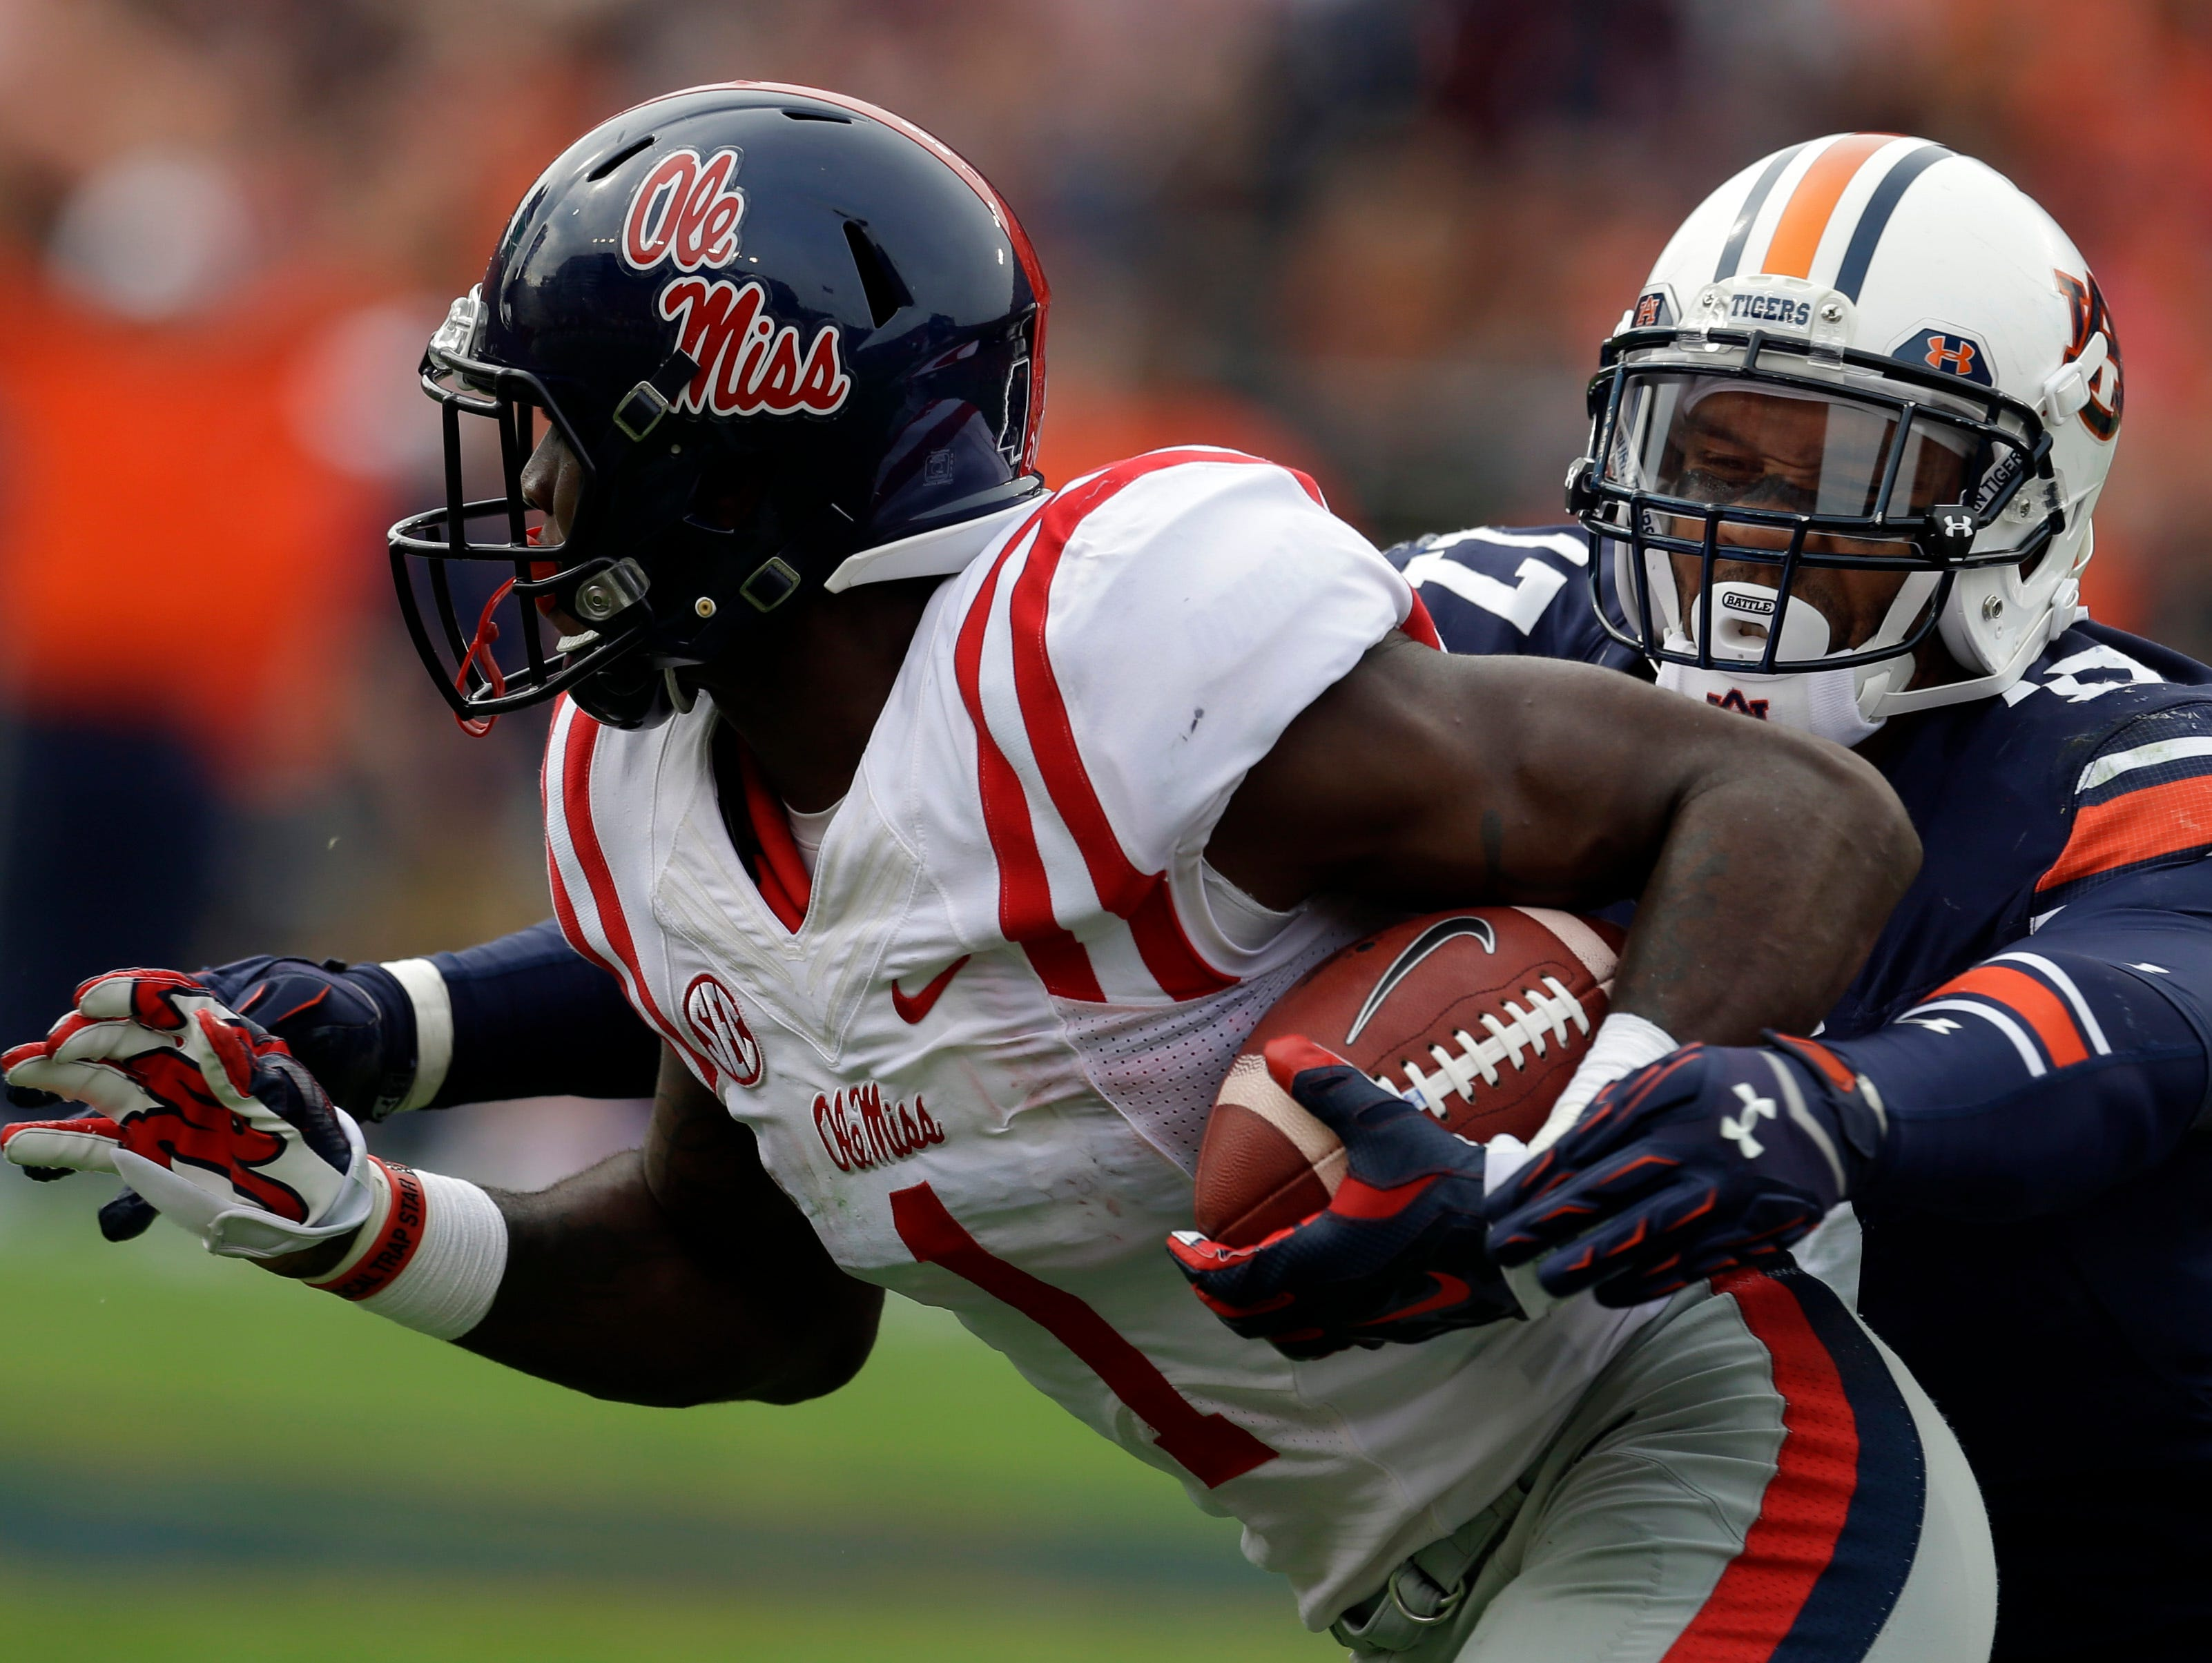 Ole Miss receiver Laquon Treadwell is the school's nominee for the Conerly Trophy.